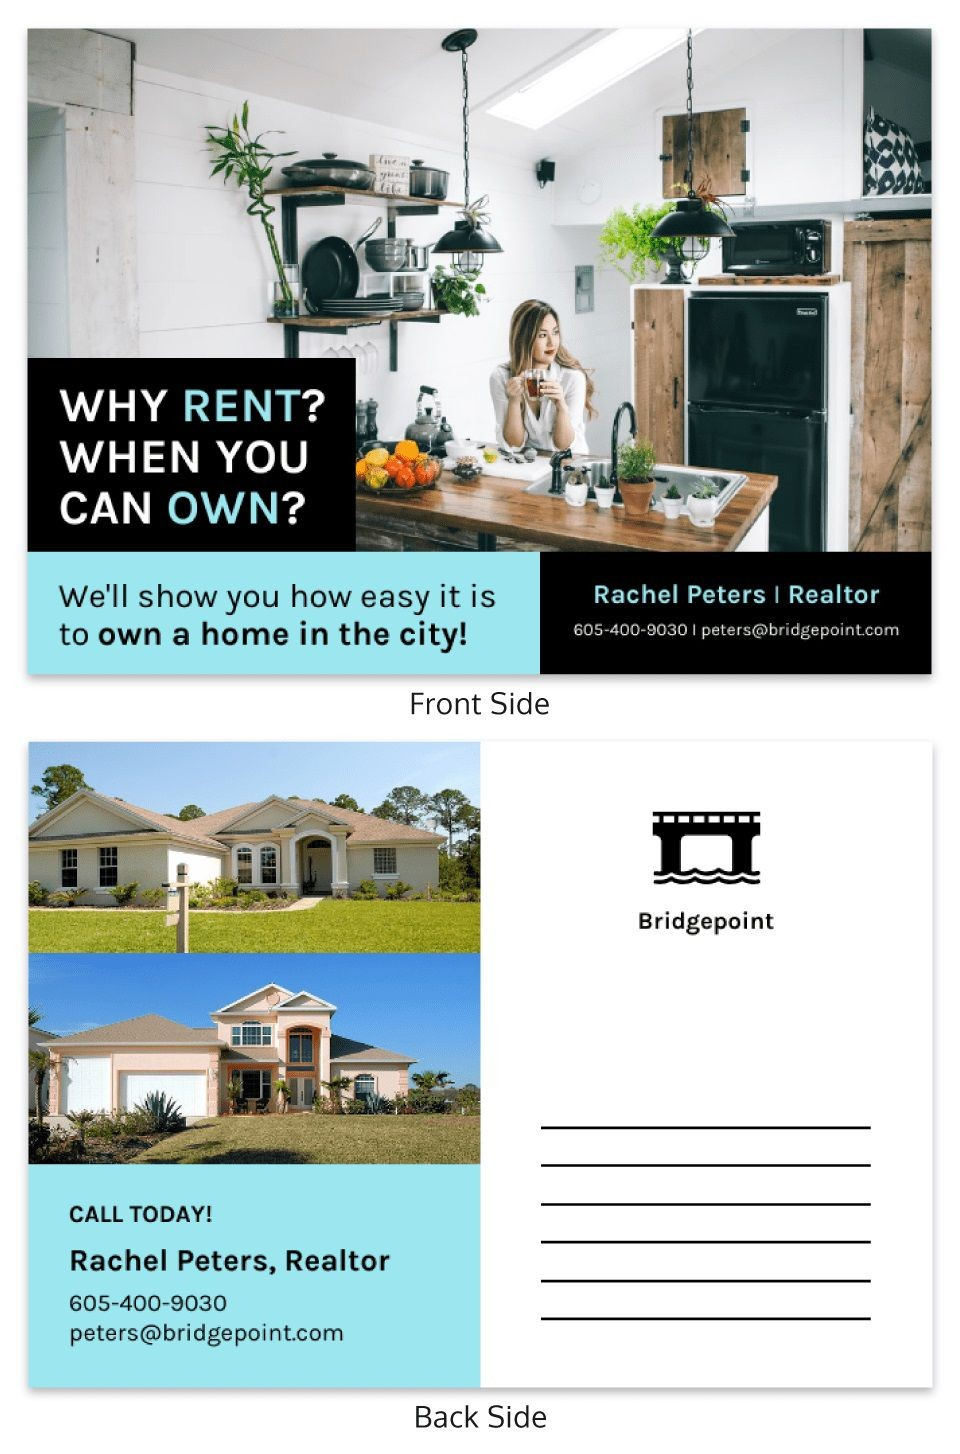 001 Fascinating Real Estate Postcard Template Design  Agent For Photoshop Investor960